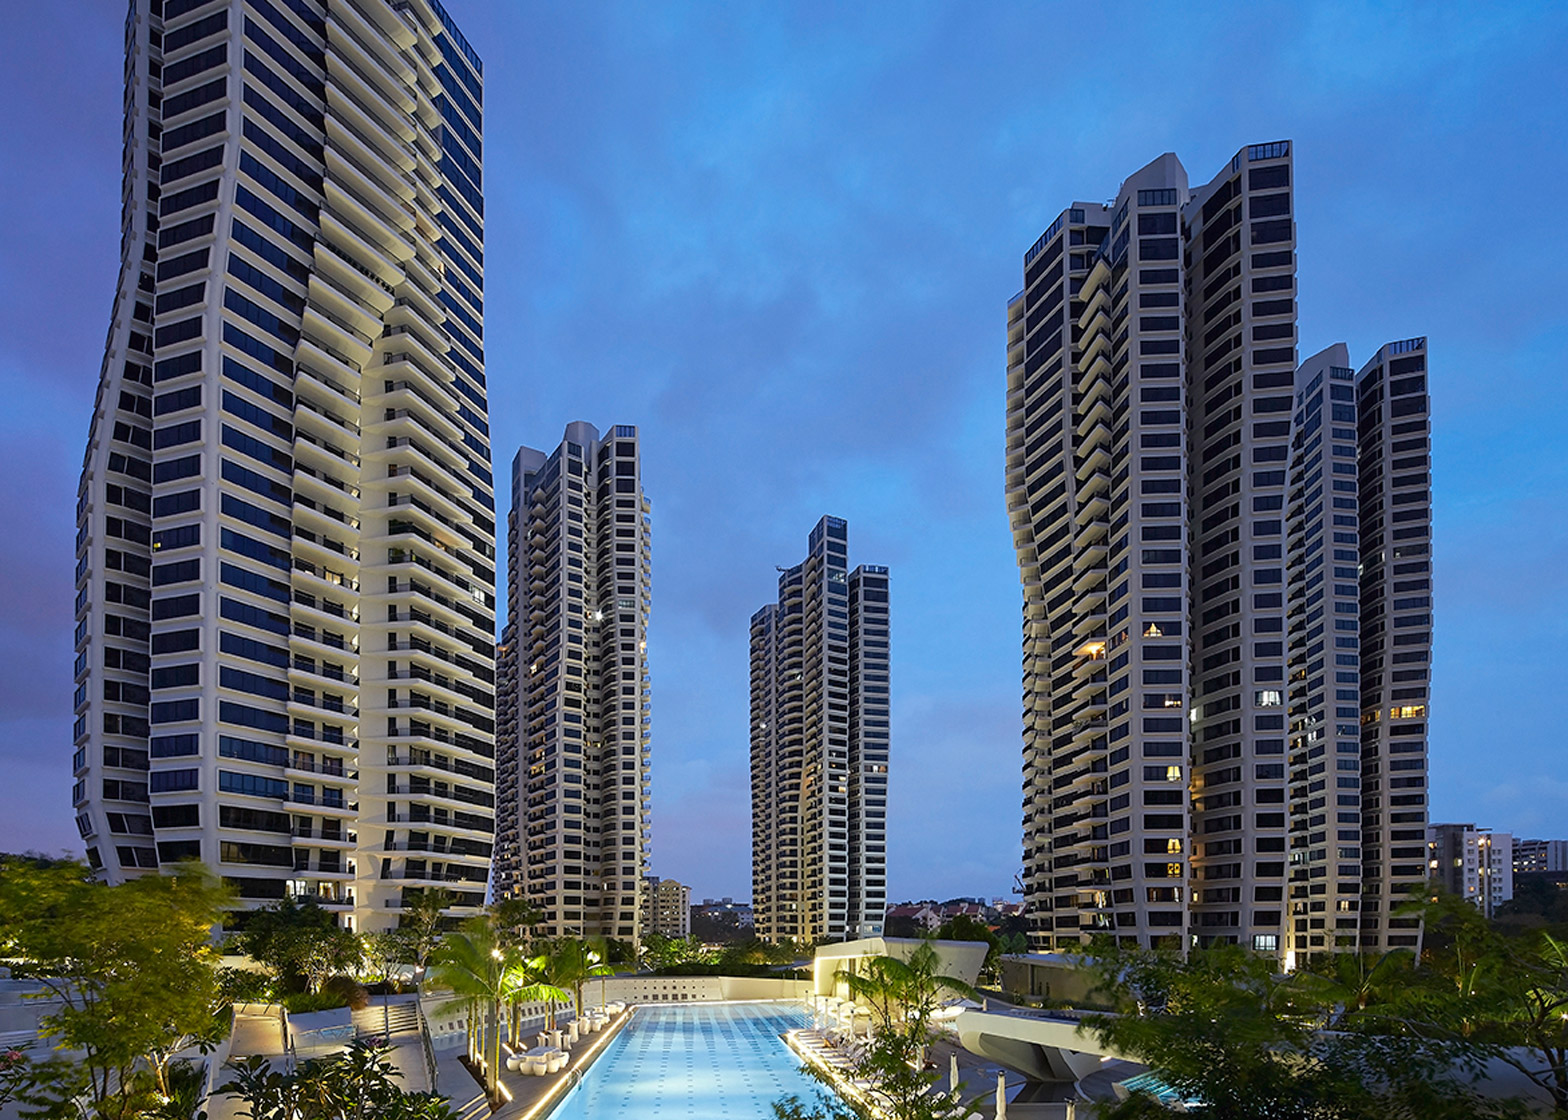 d'Leedon, Singapore, by Zaha Hadid Architects